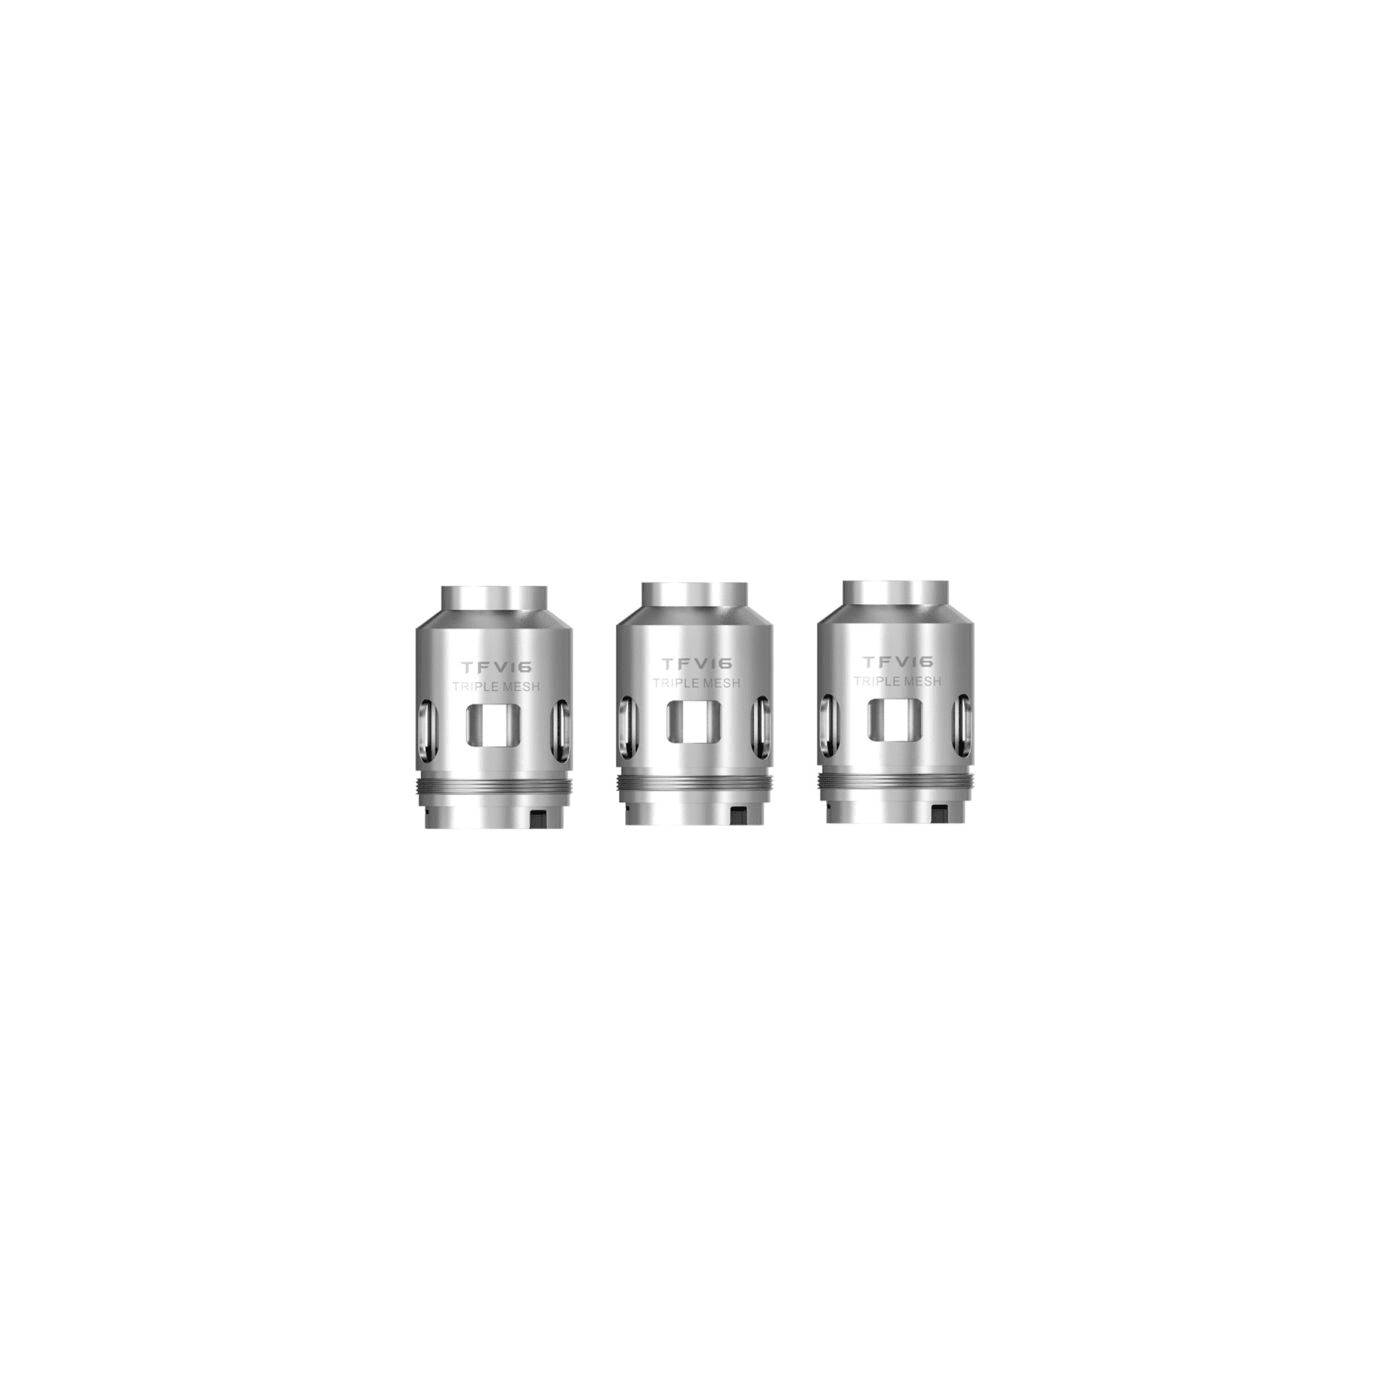 Smok TFV16 Triple Mesh Replacement Coil - 3 Pack